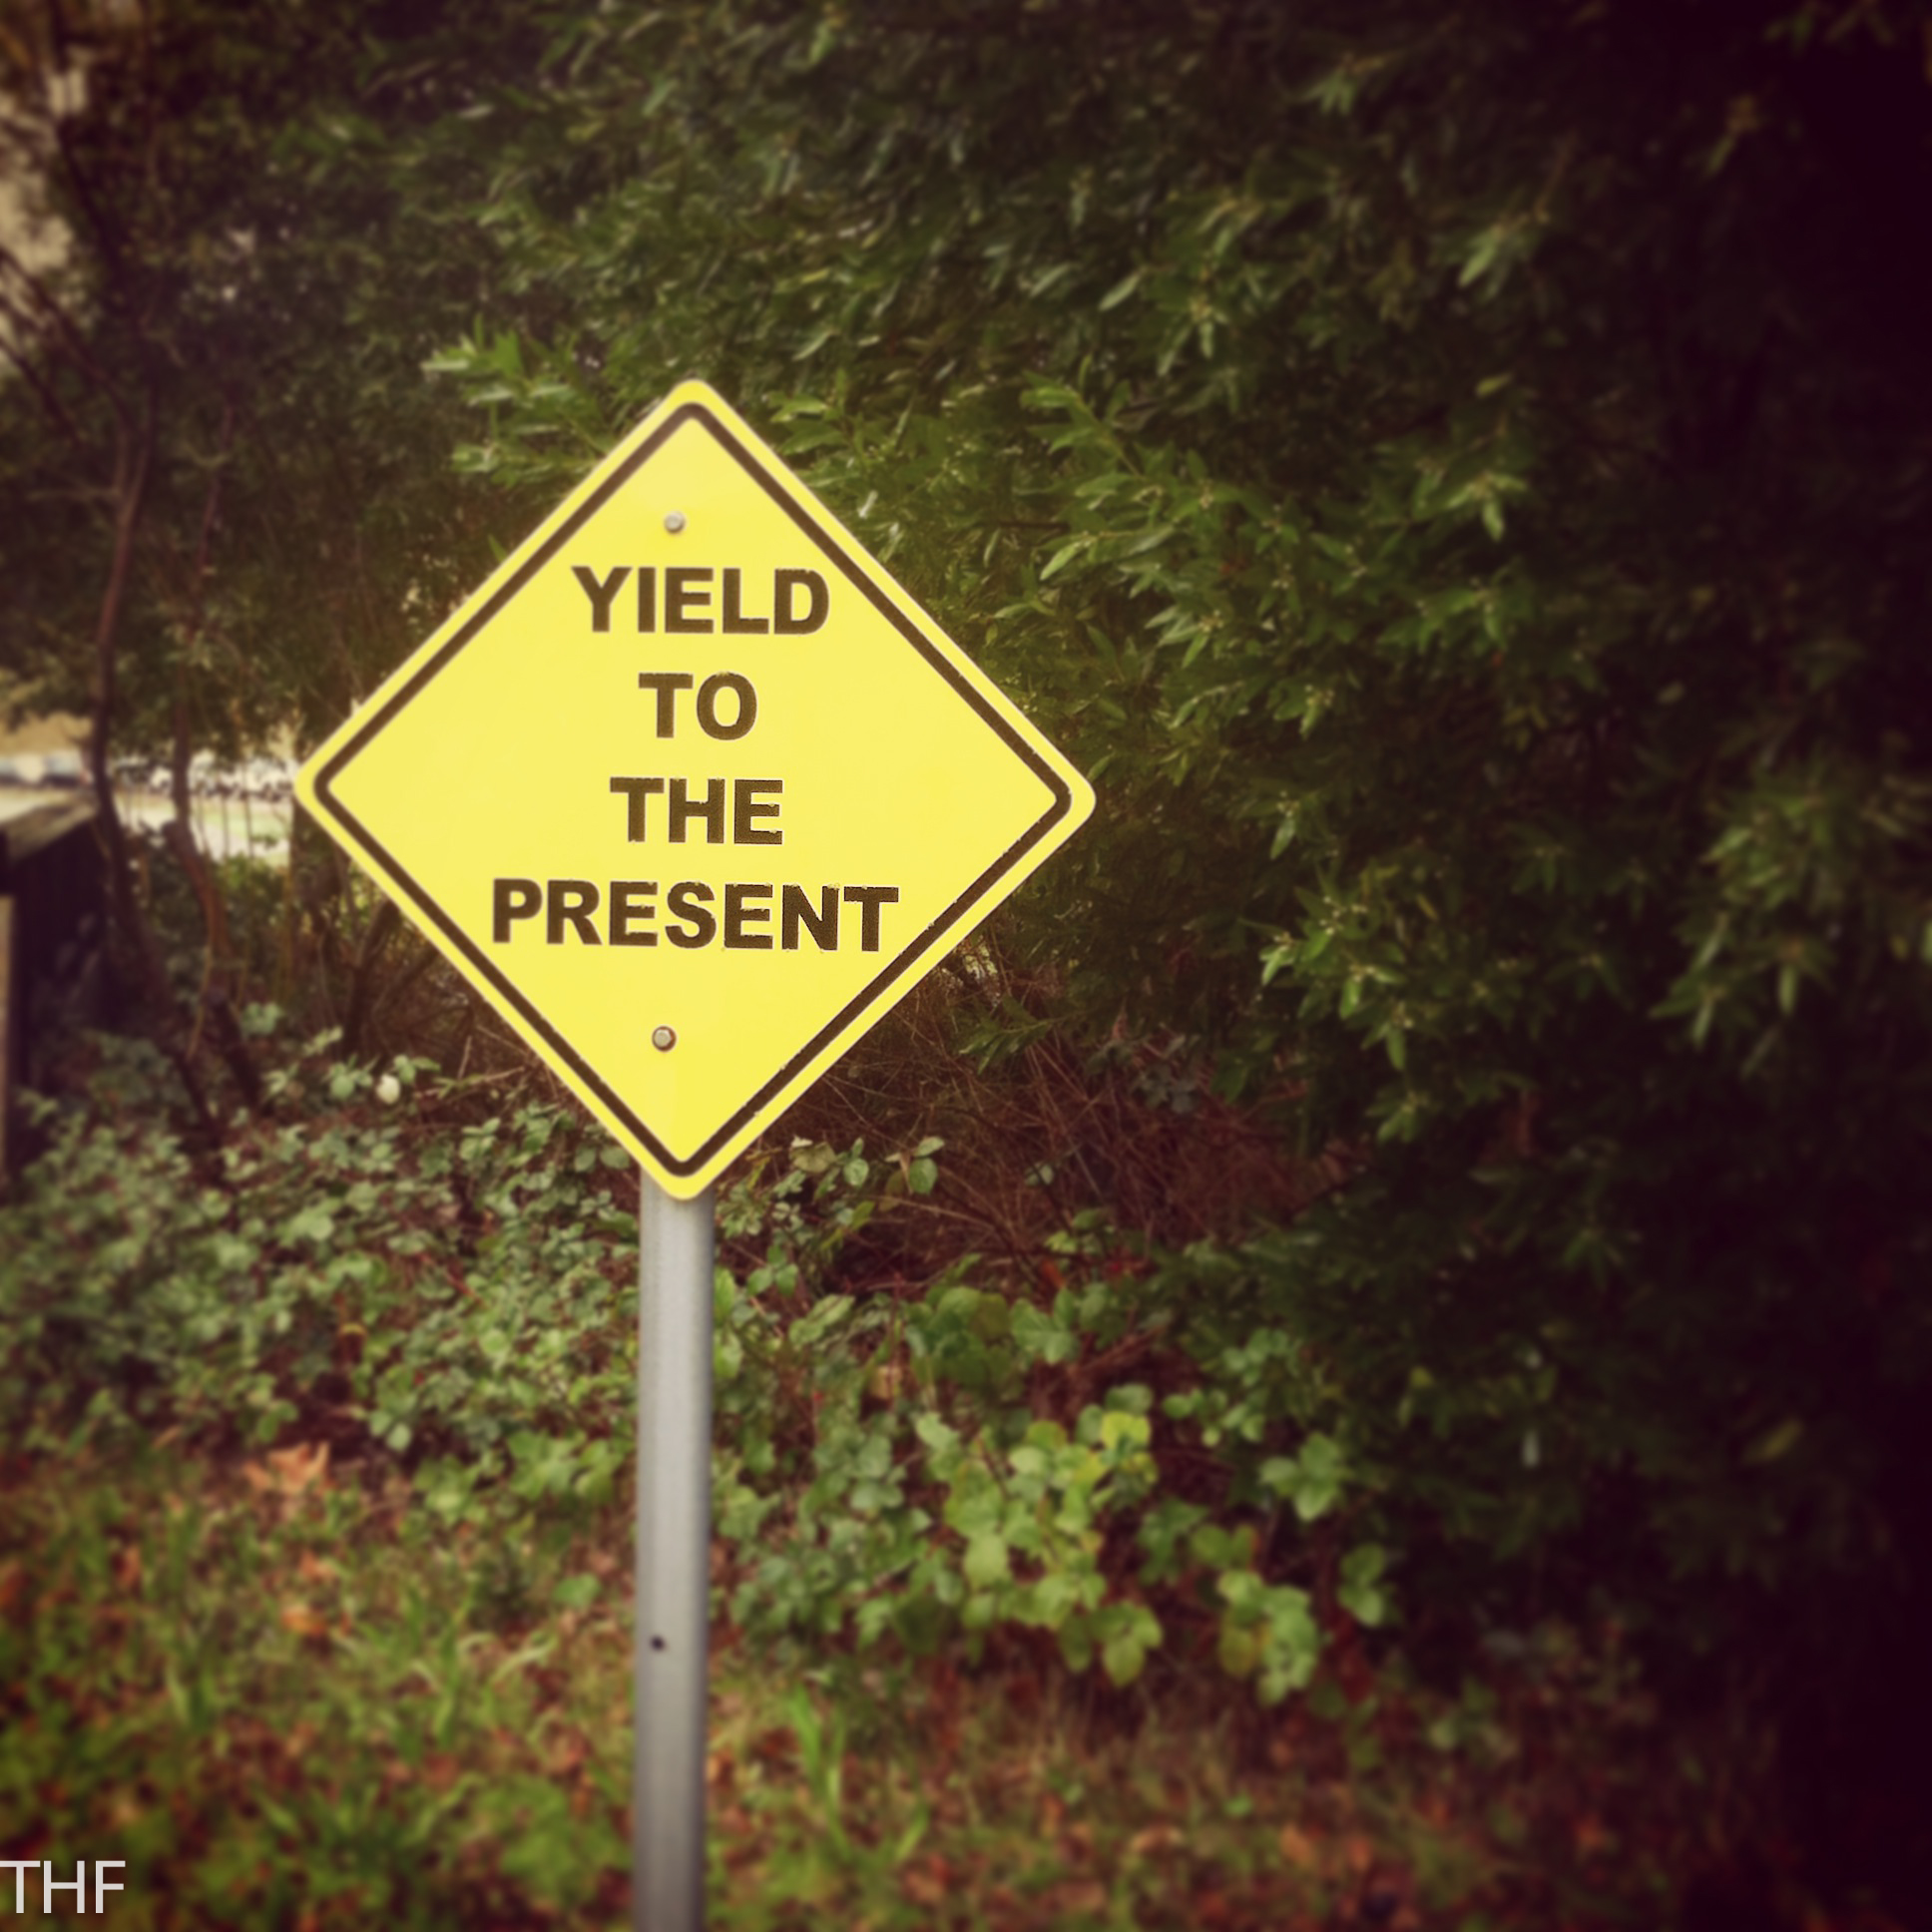 Yield to present0001-2.jpg